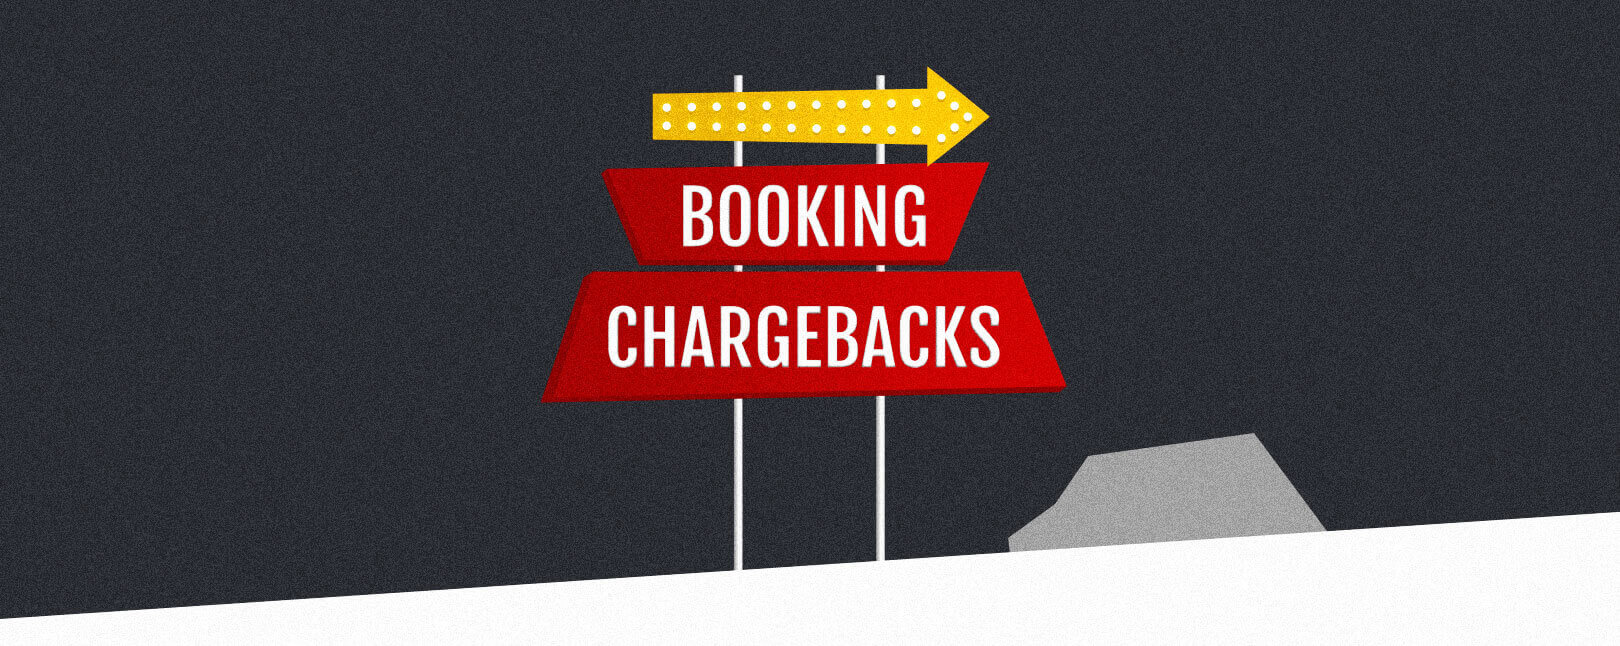 Hotel Booking Chargeback